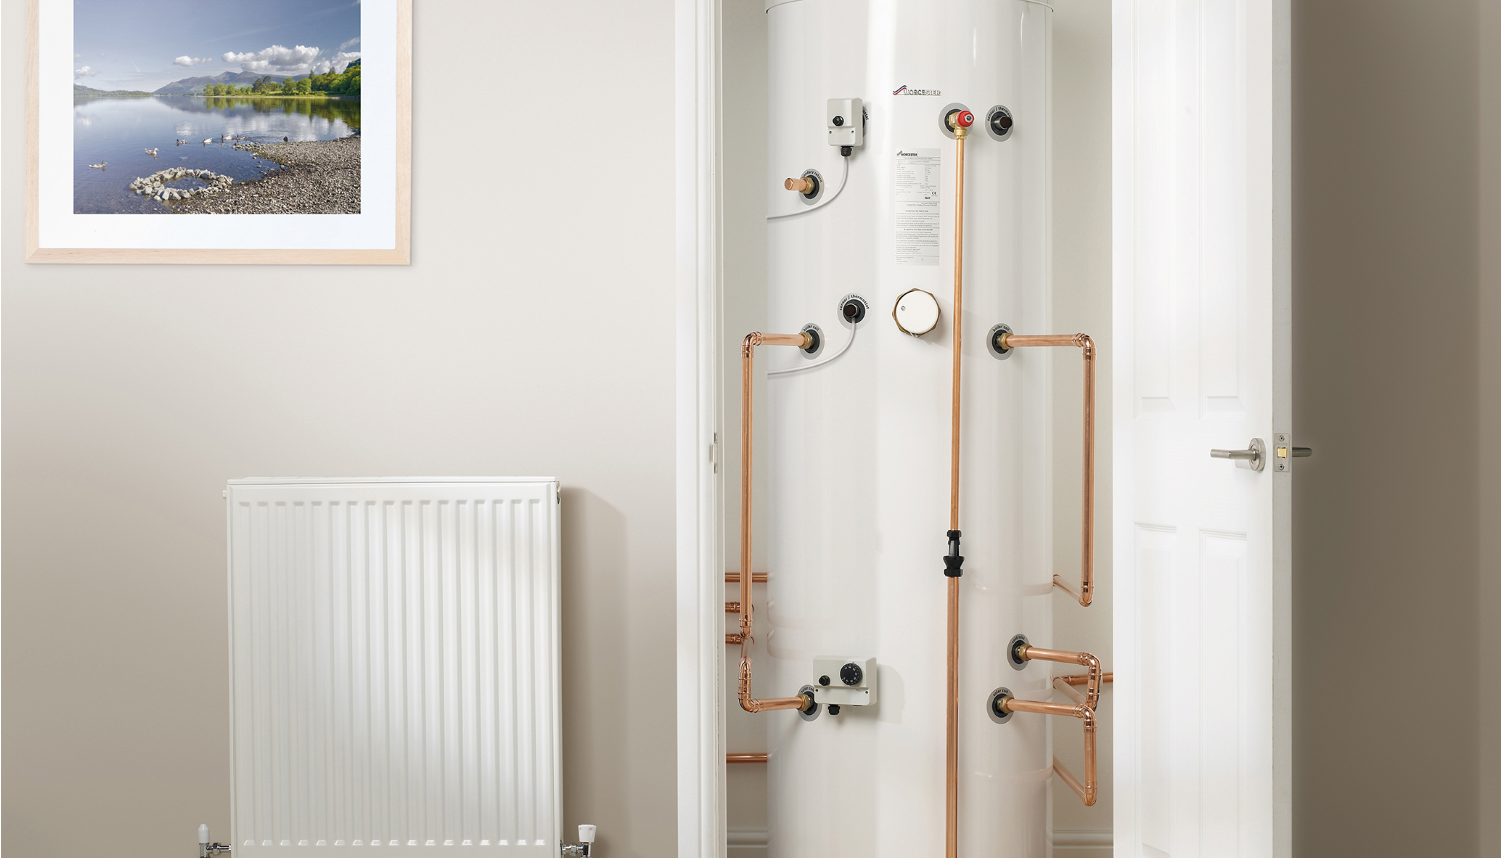 The Benefits of Unvented Hot Water Cylinders - The PlumbNation Blog